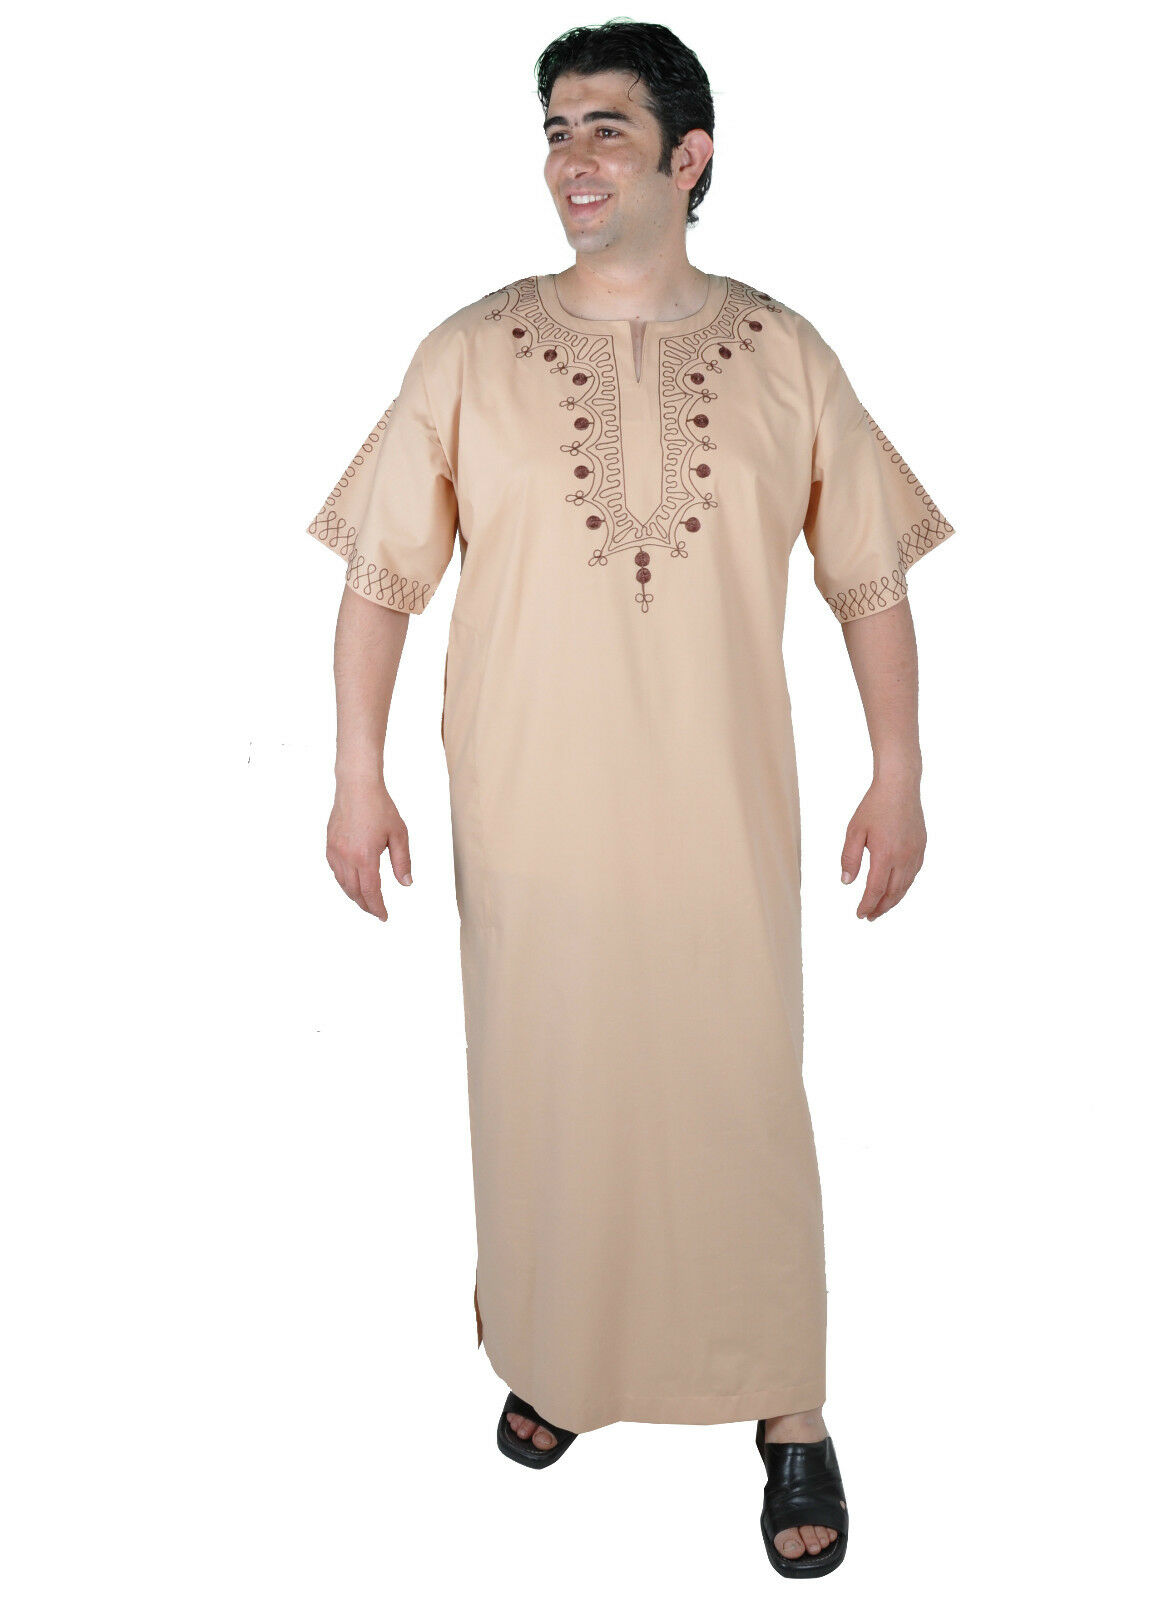 Modern Men's Caftan Housecoat Aus1001 Night in Beige - Kam00675